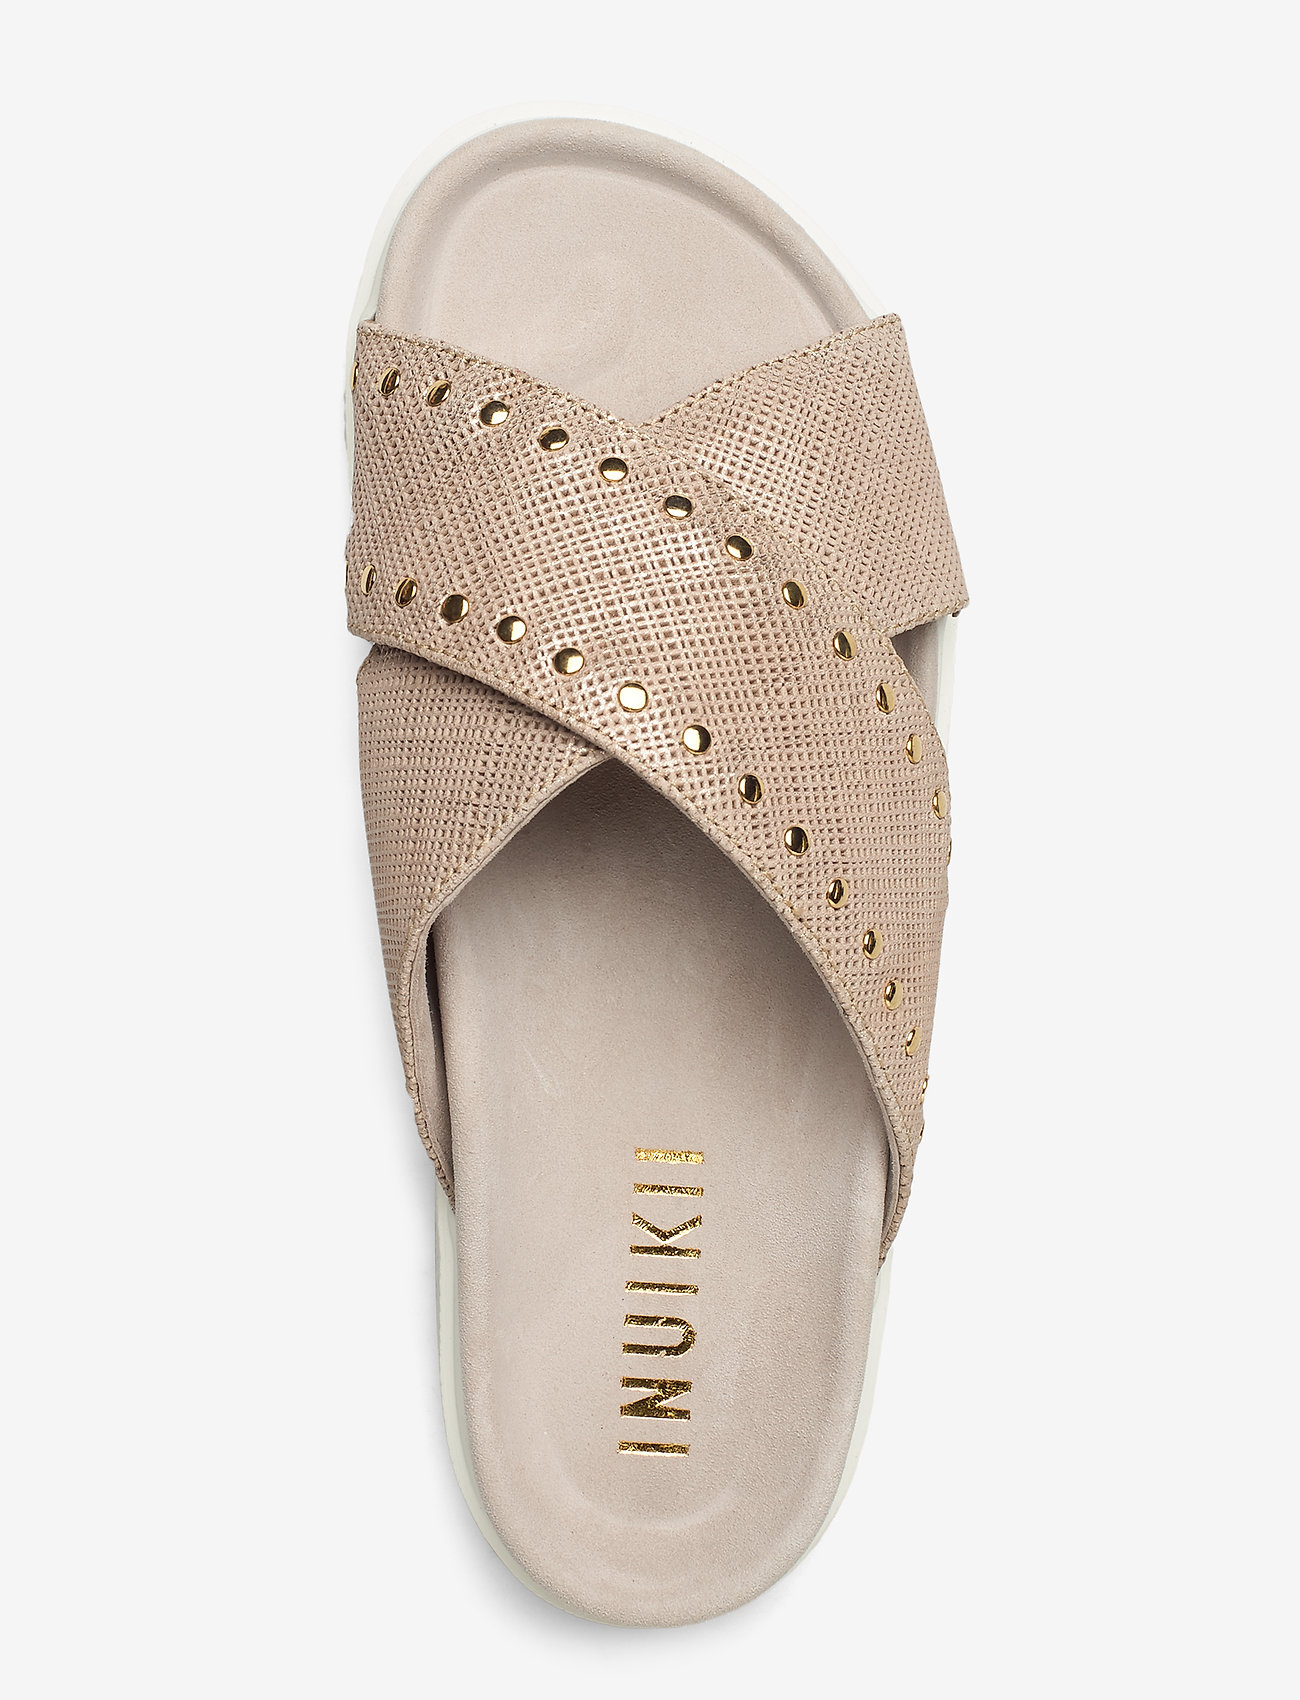 Inuikii Slipper Crossed Studs (Beige) - Inuikii